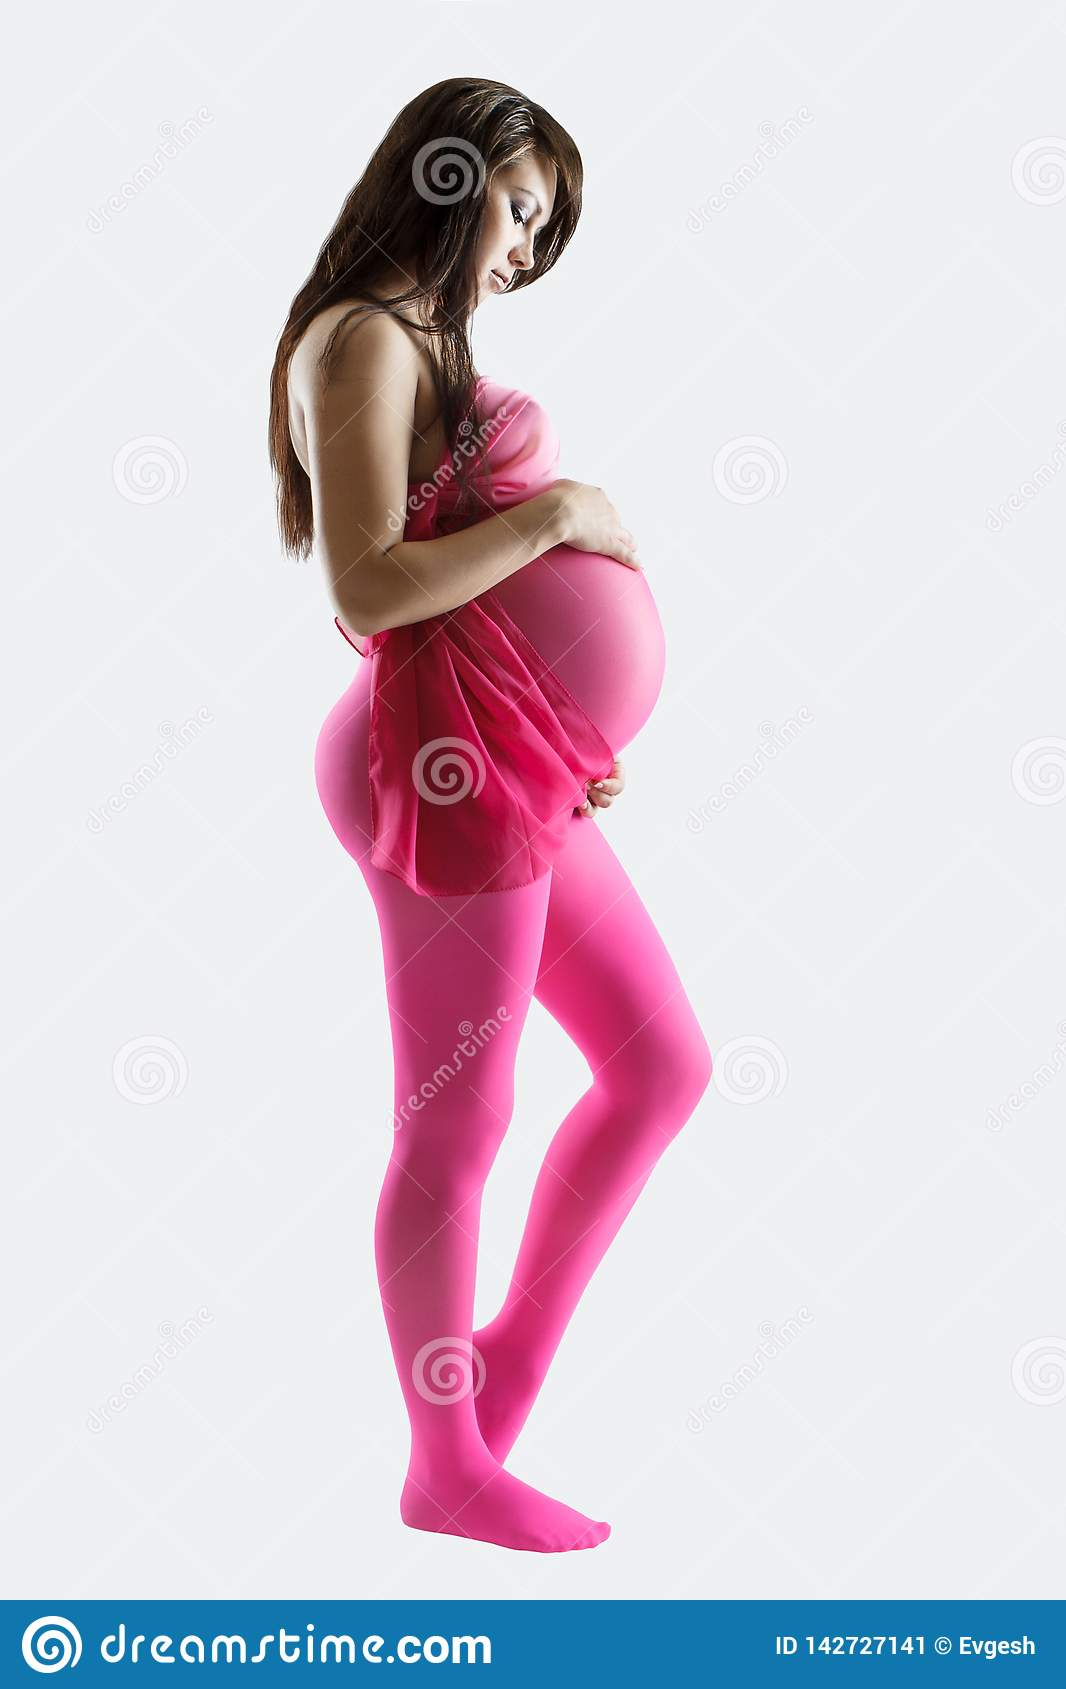 Pregnant woman in pink leggens tender holding her belly, isolated